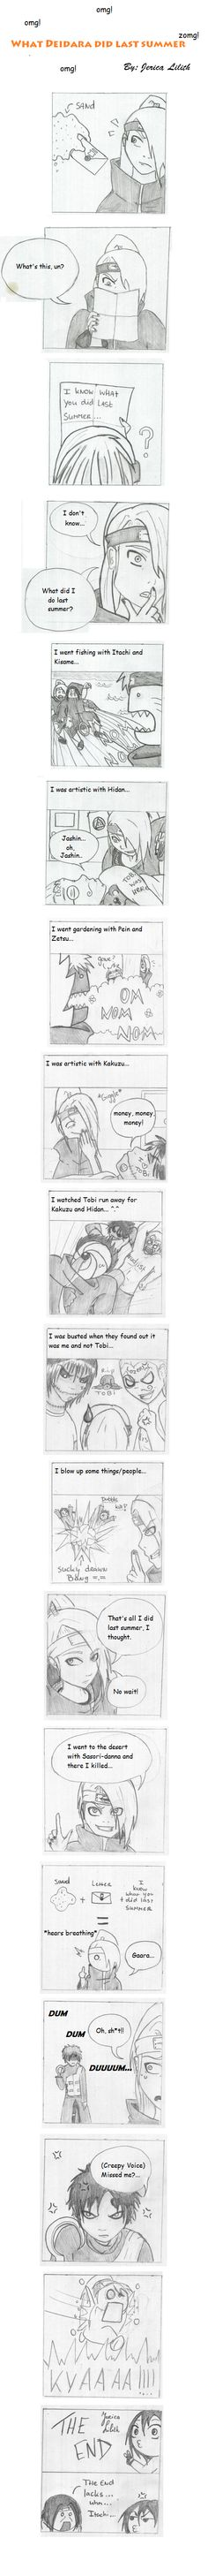 Deidara: Funny comic by JericaLilith on DeviantArt